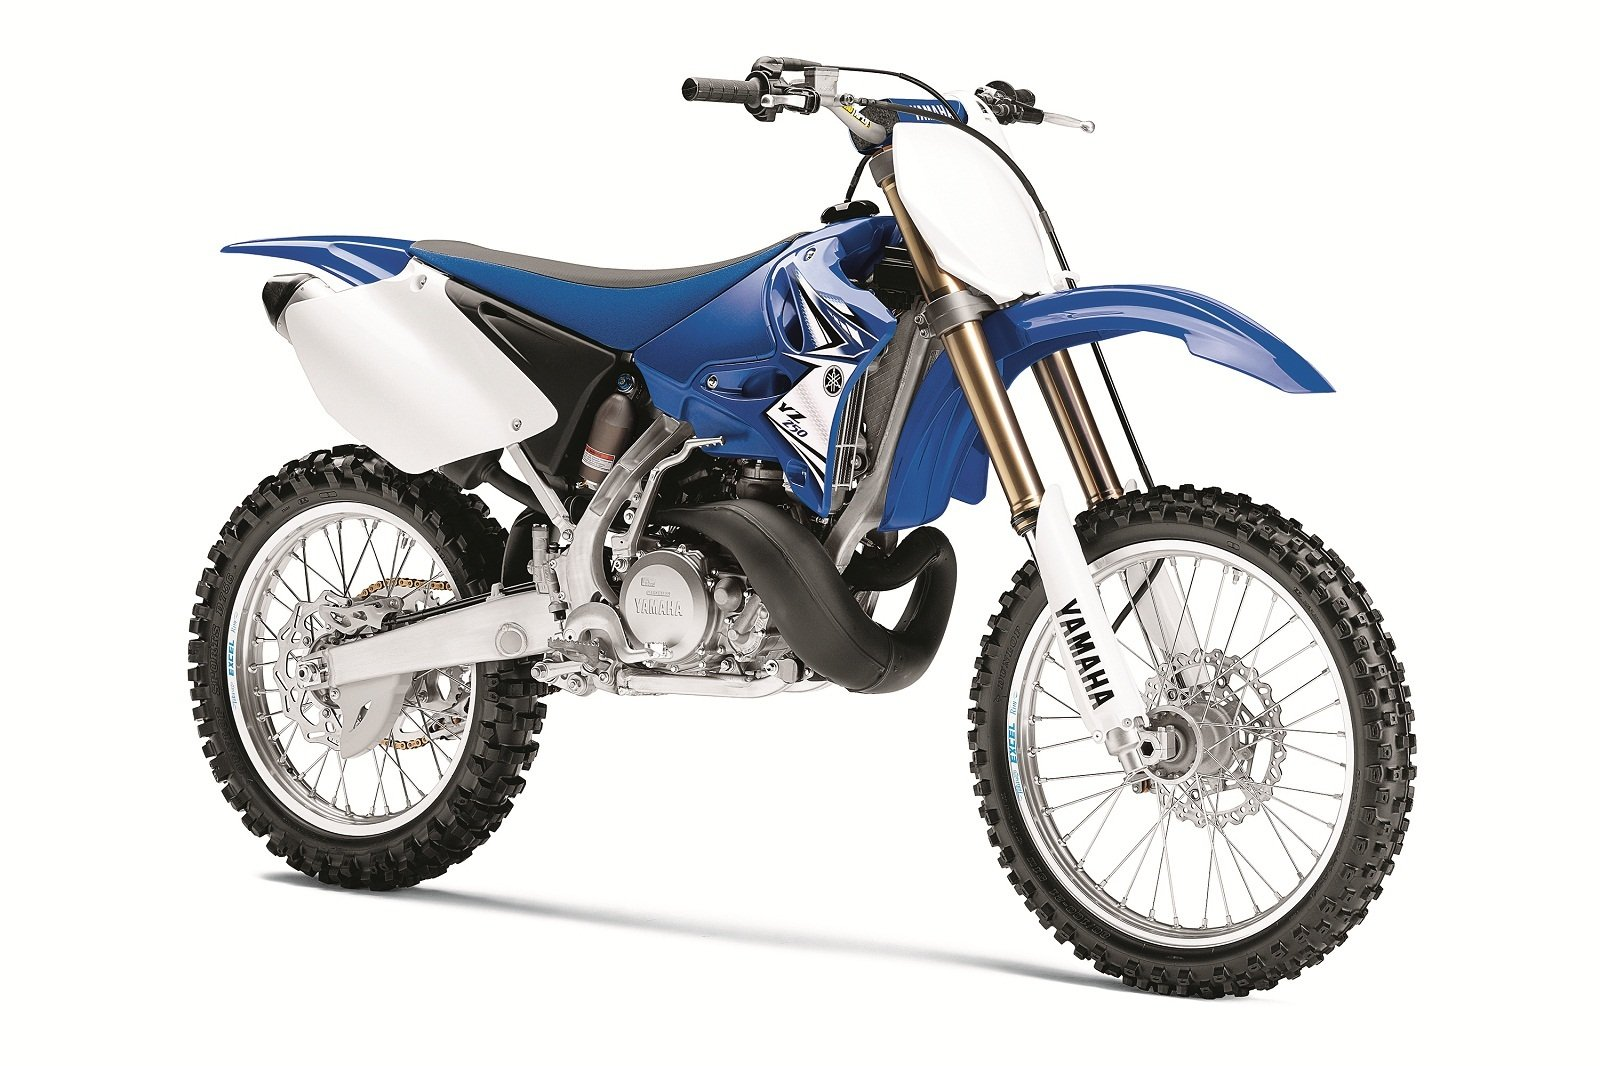 2011 yamaha yz250 review top speed. Black Bedroom Furniture Sets. Home Design Ideas